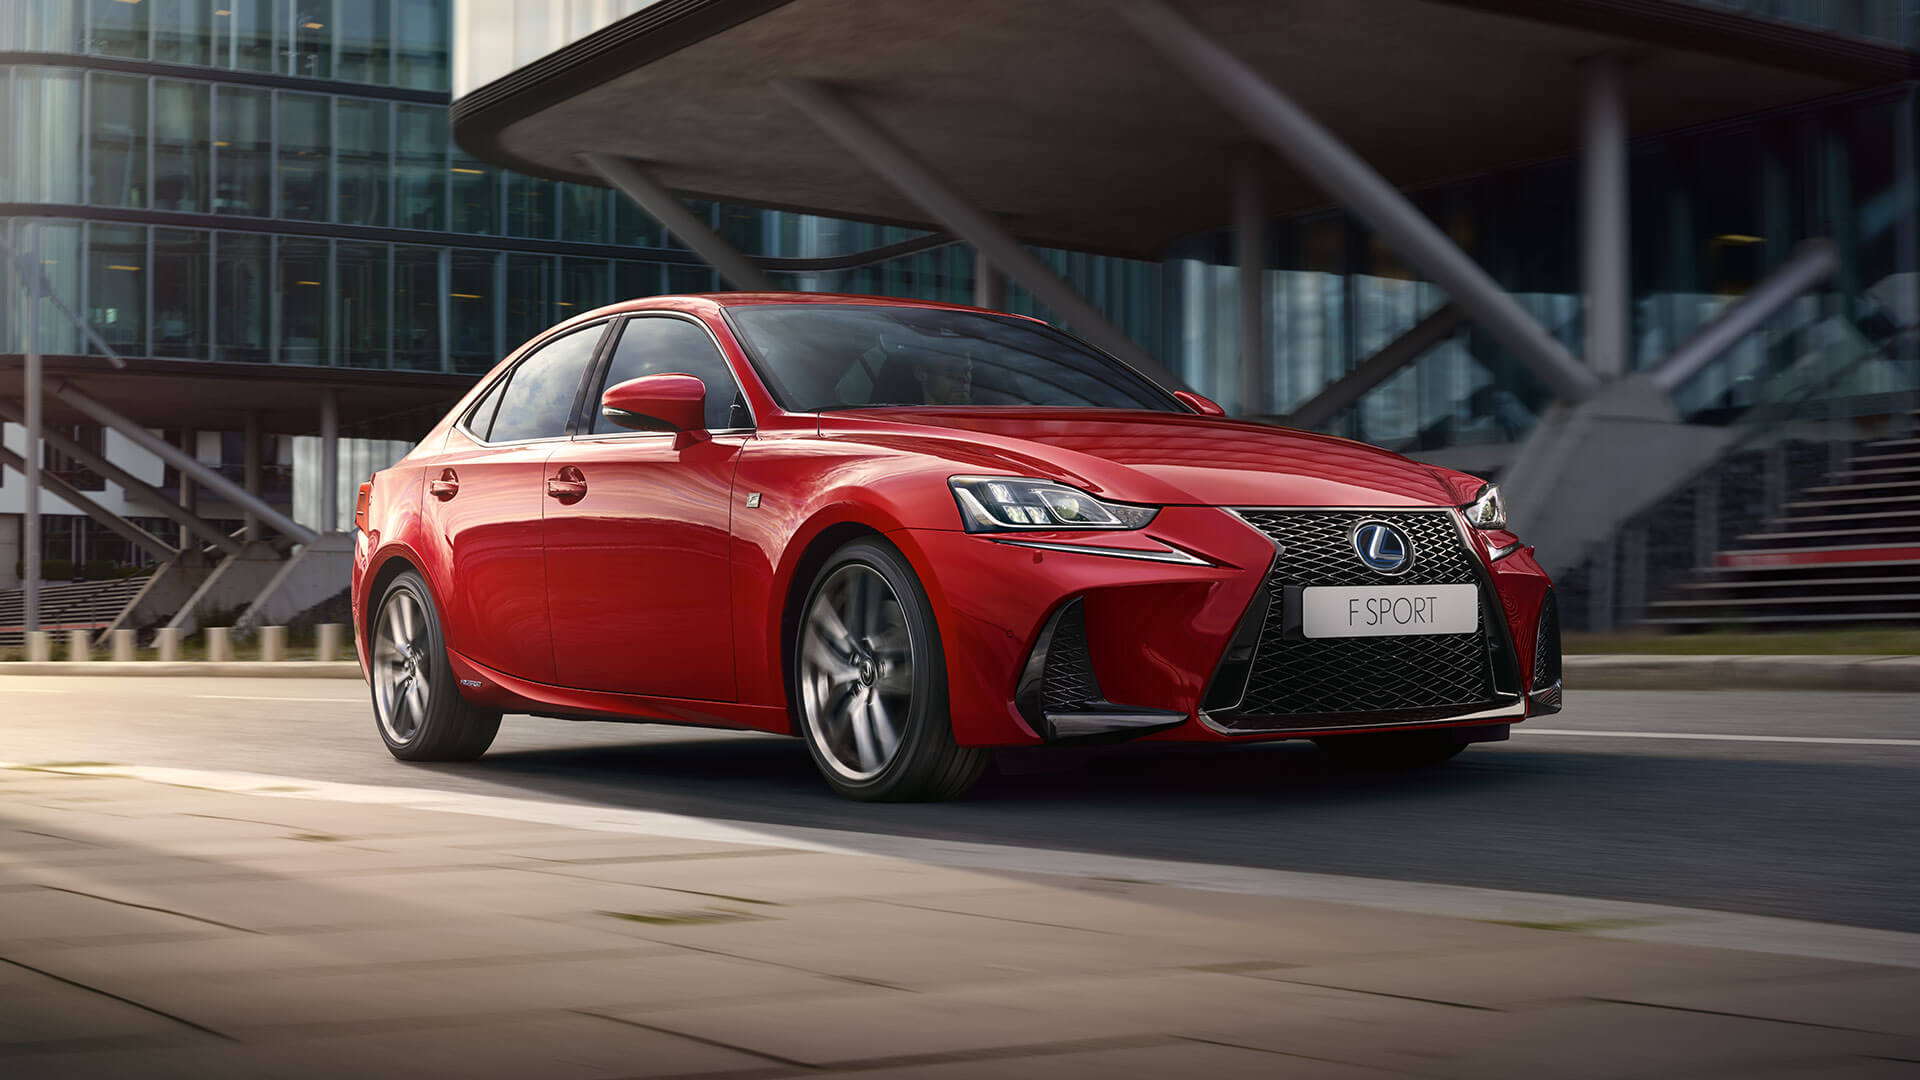 2019 lexus model names is